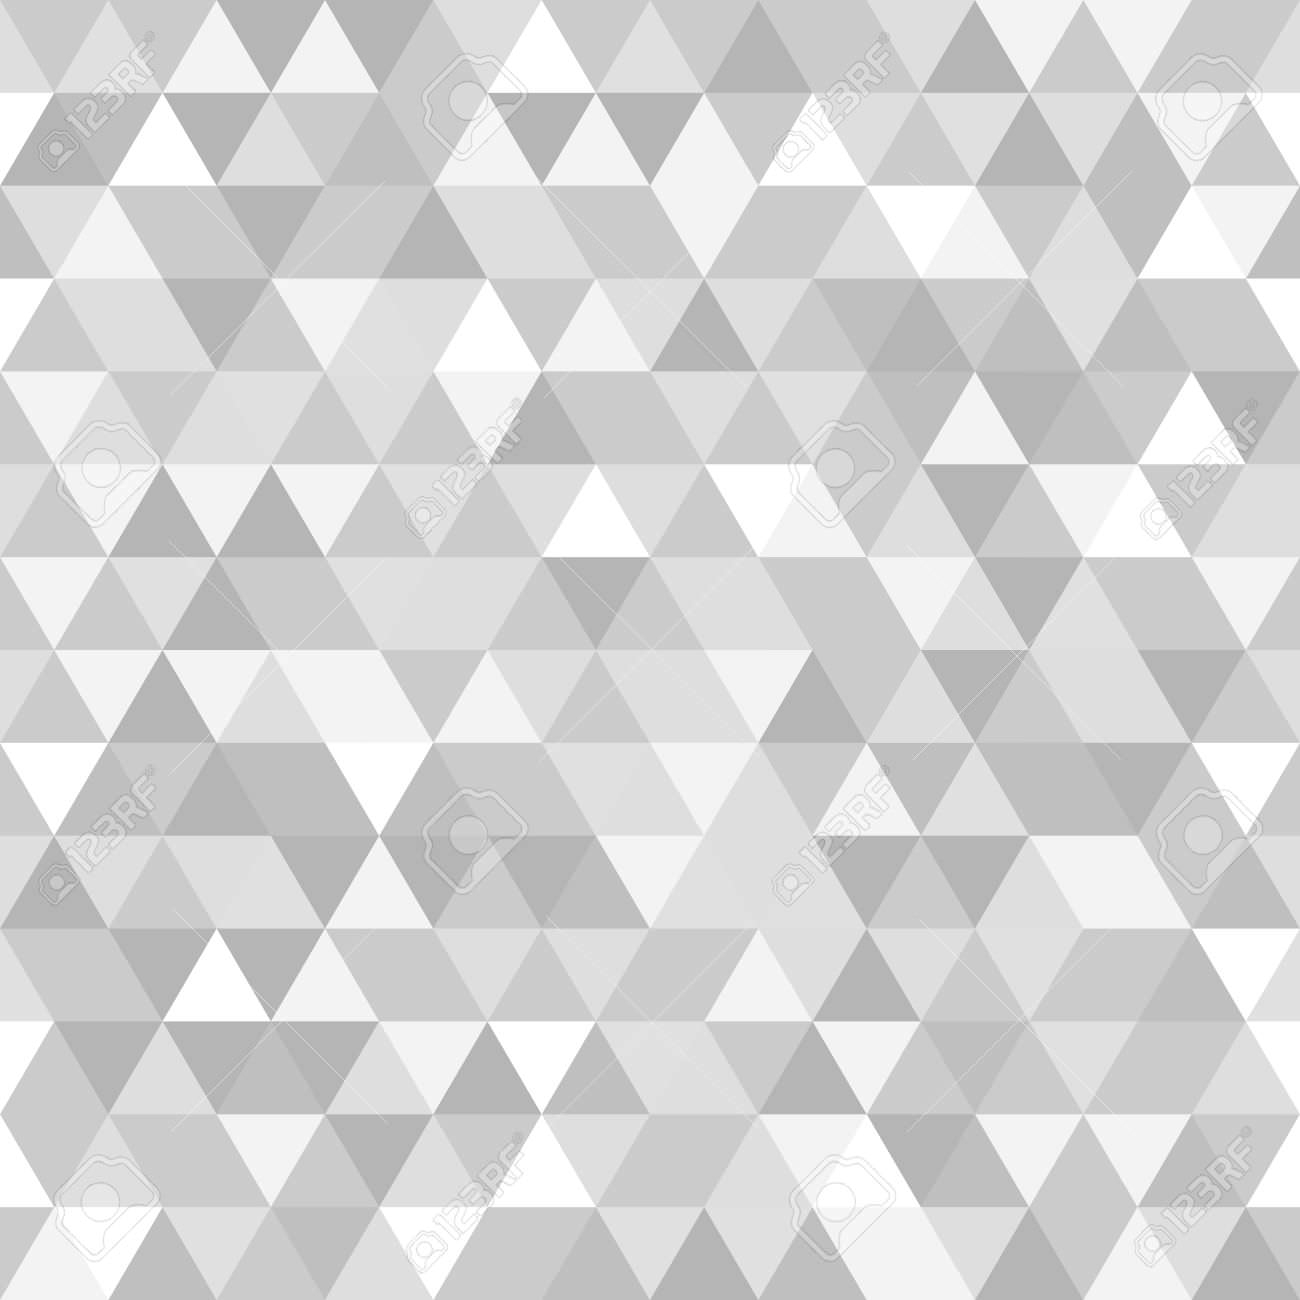 Grey and white background images for Gray and white wallpaper designs